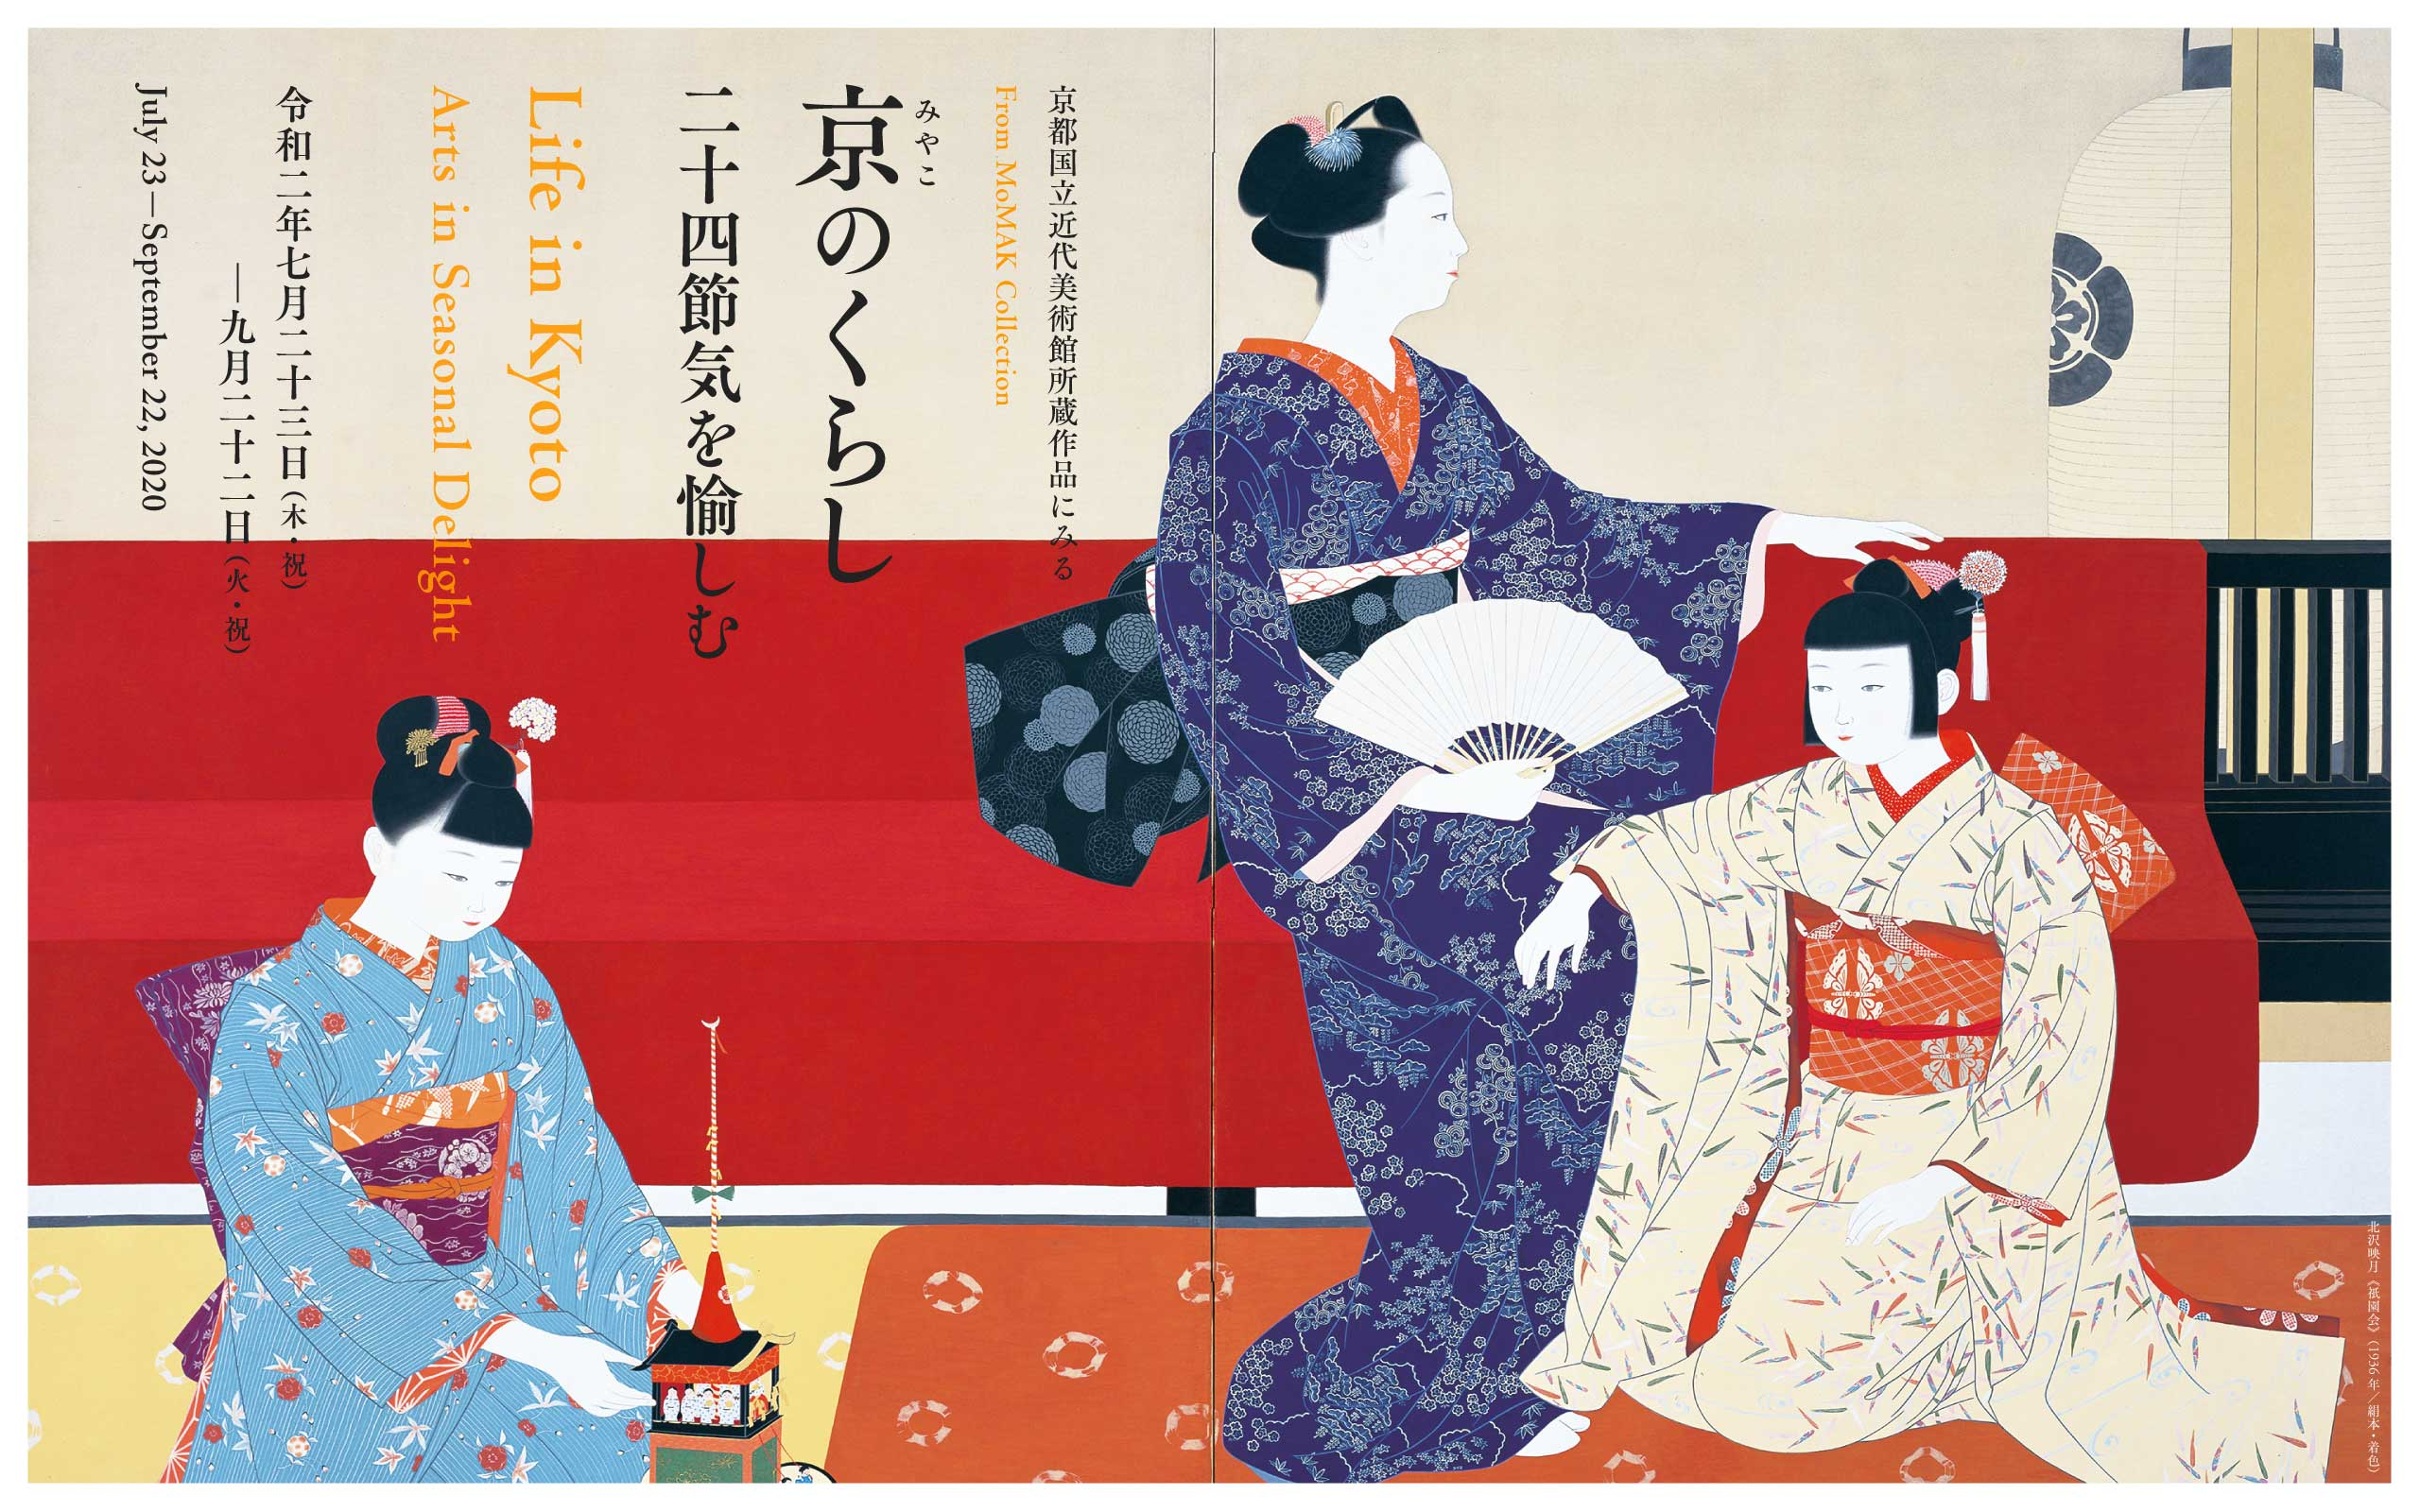 From MoMAK Collection Life in Kyoto – Arts in Seasonal Delight